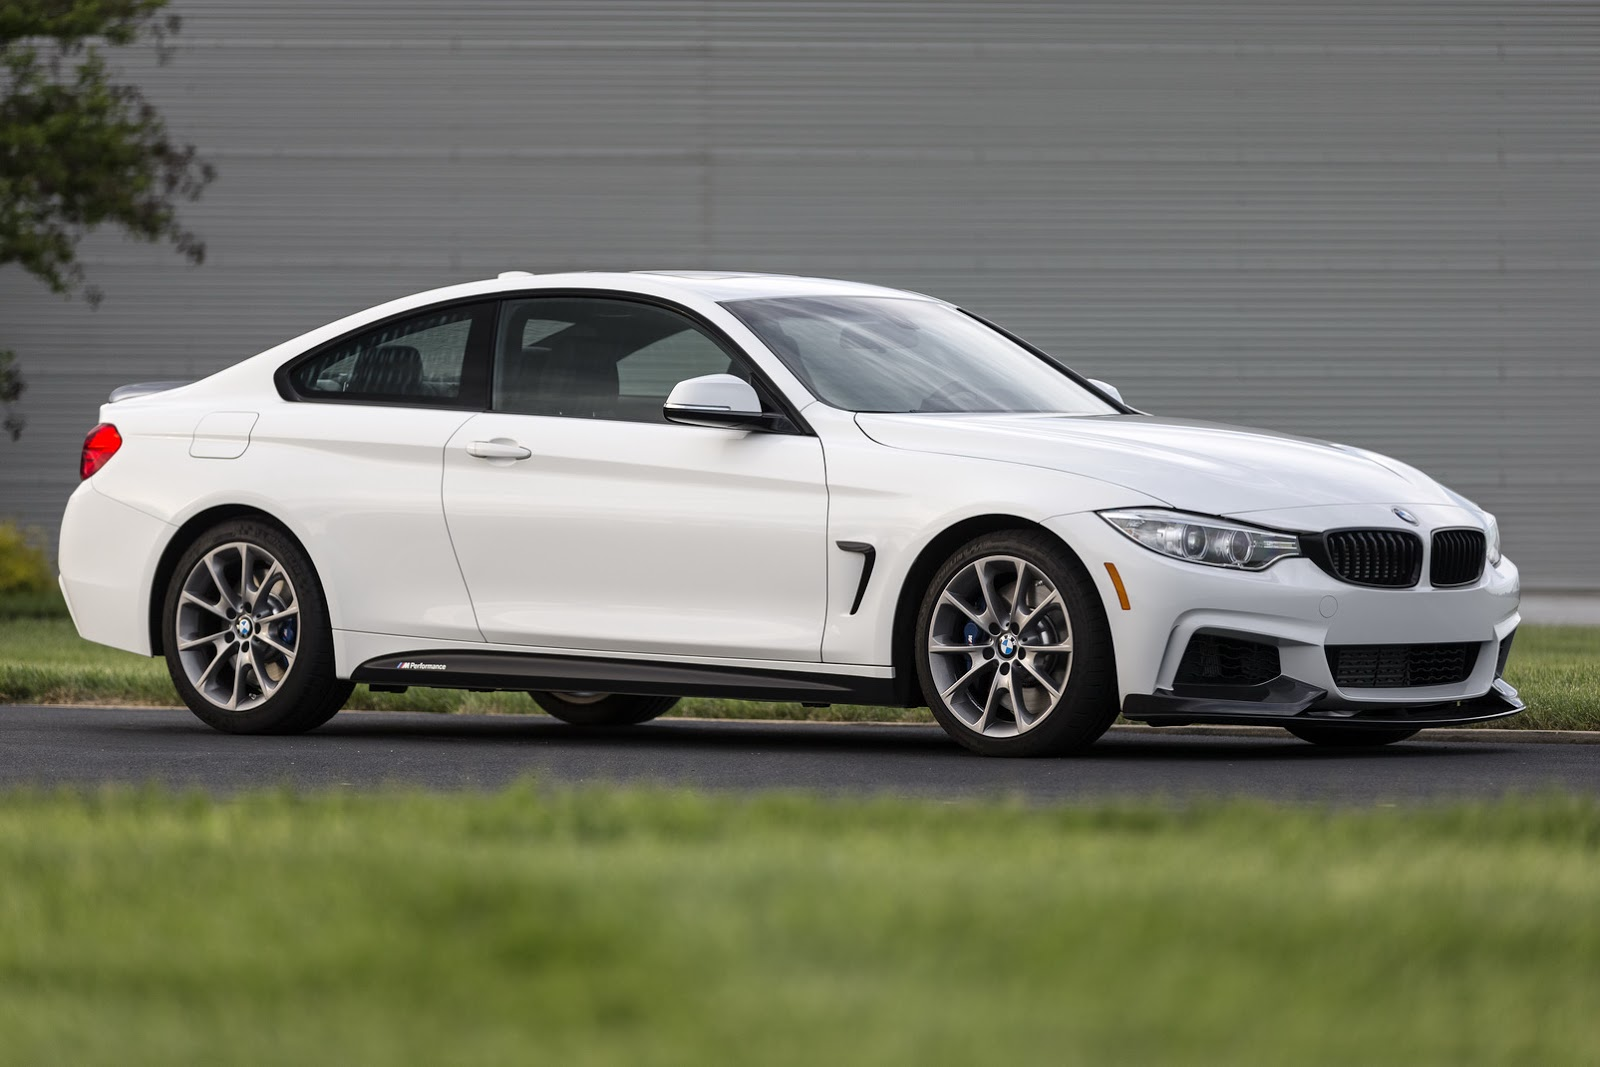 Bmw 435i zhp coupe 2016 pictures information amp specs - Bmw 435i Zhp Coupe 2016 Pictures Information Amp Specs 10